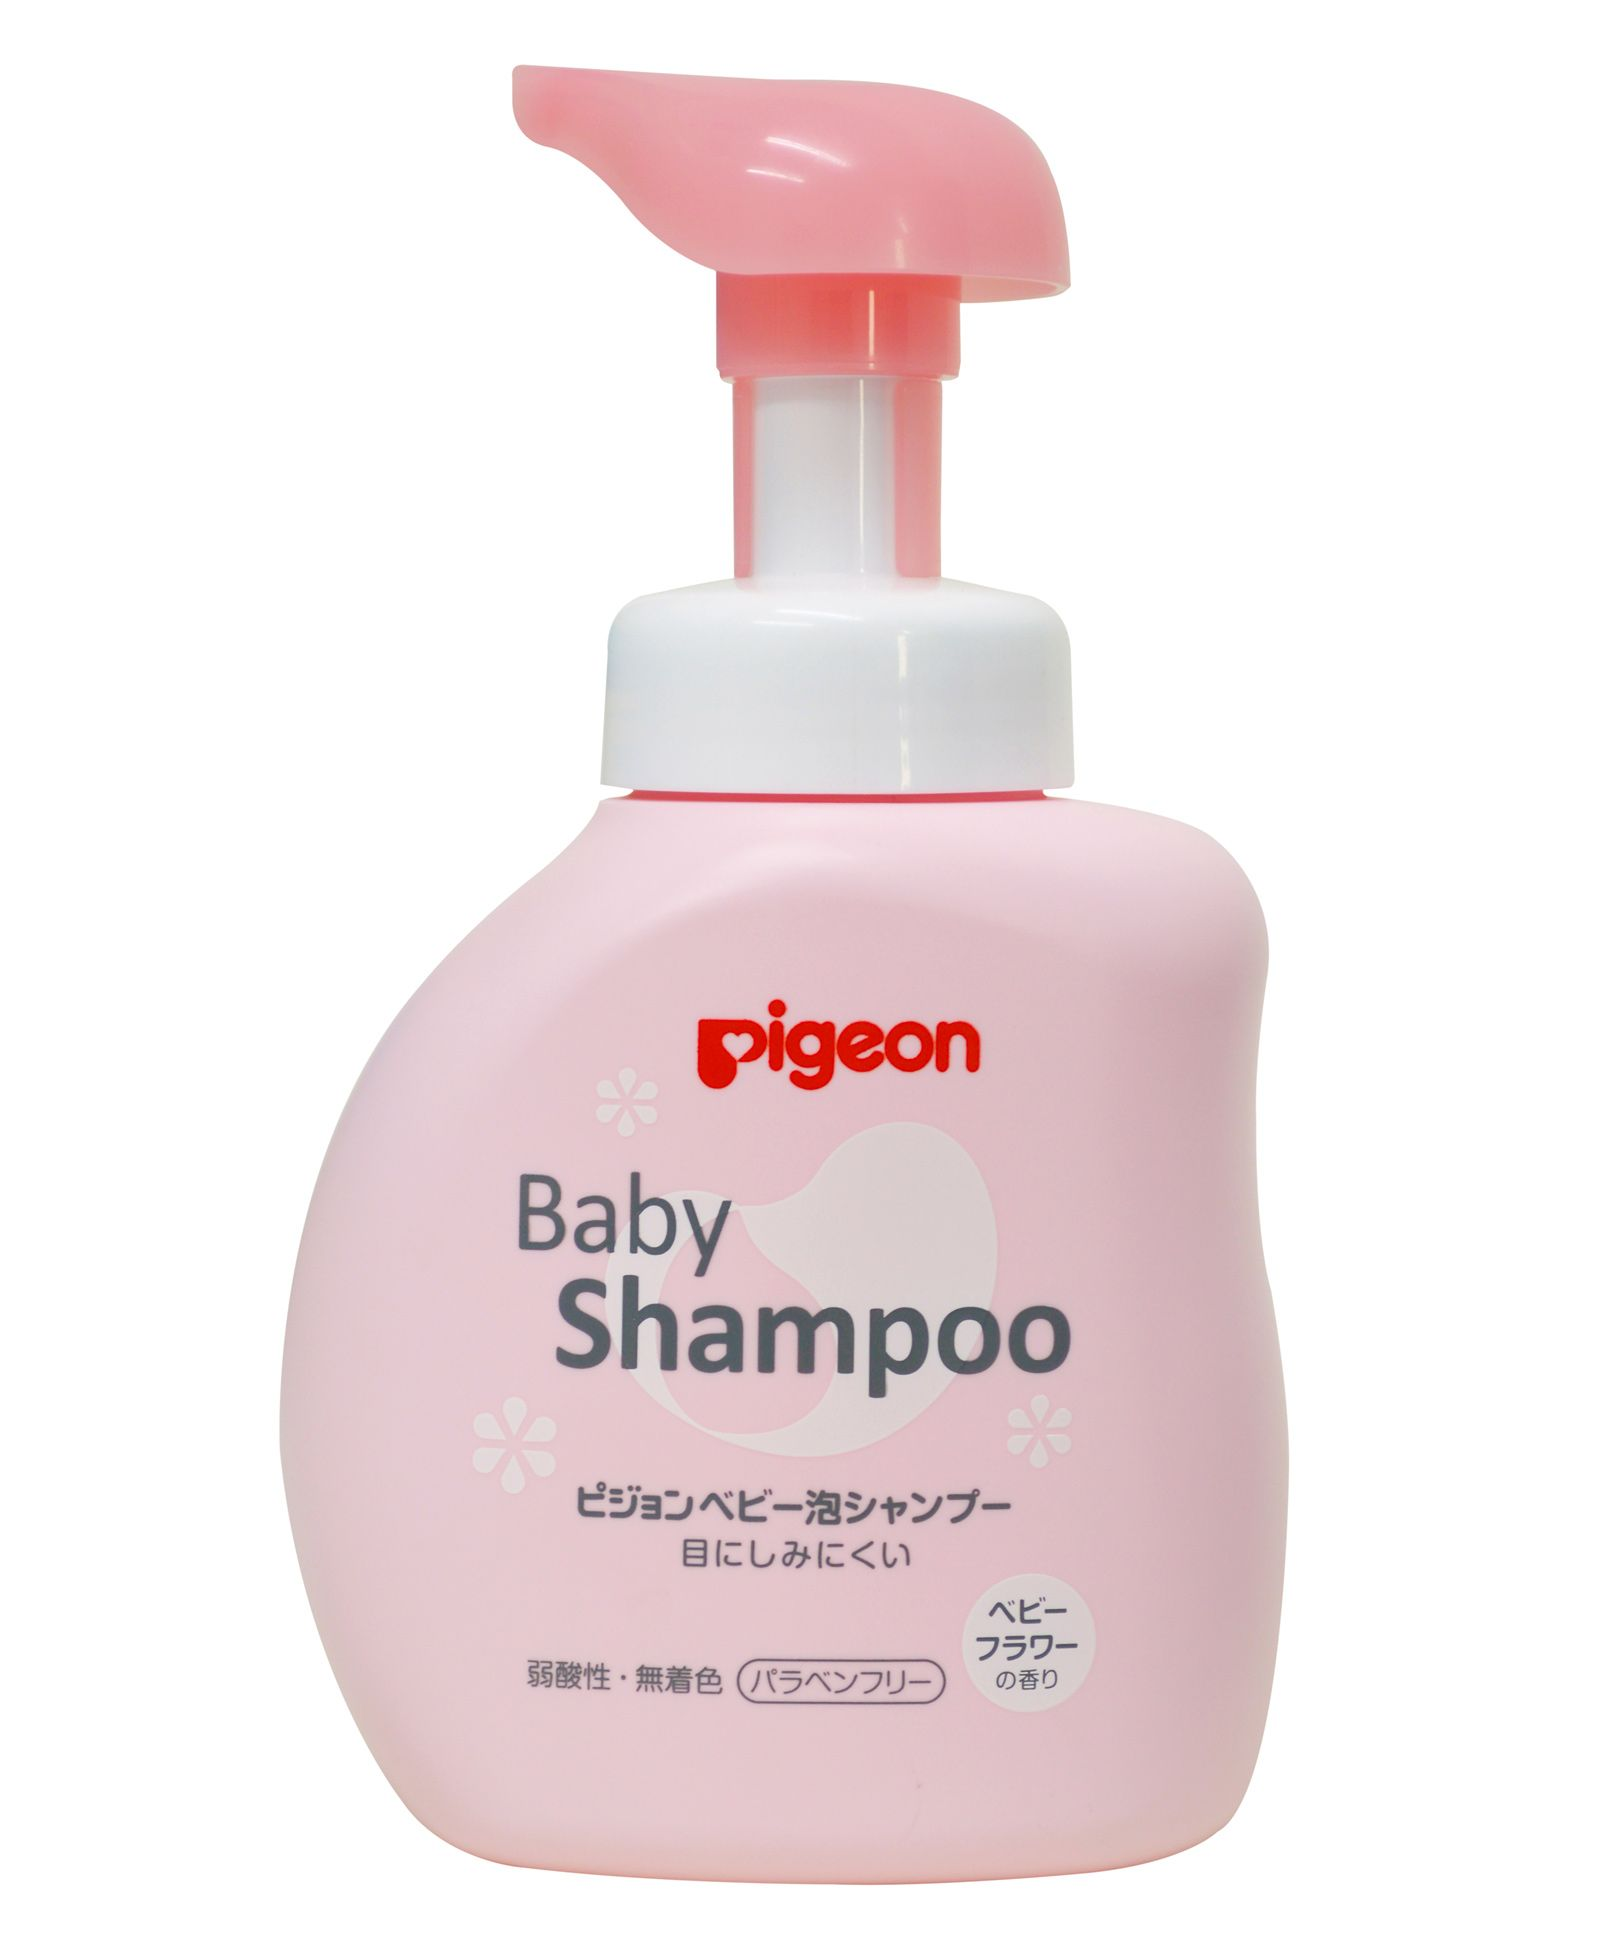 Pigeon Carnival!! Upto 35% Off On Baby Skin Care, Bath Accessories & Kids Grooming Products By Firstcry | Pigeon Baby Foam Shampoo Floral - 350 ml @ Rs.552.50